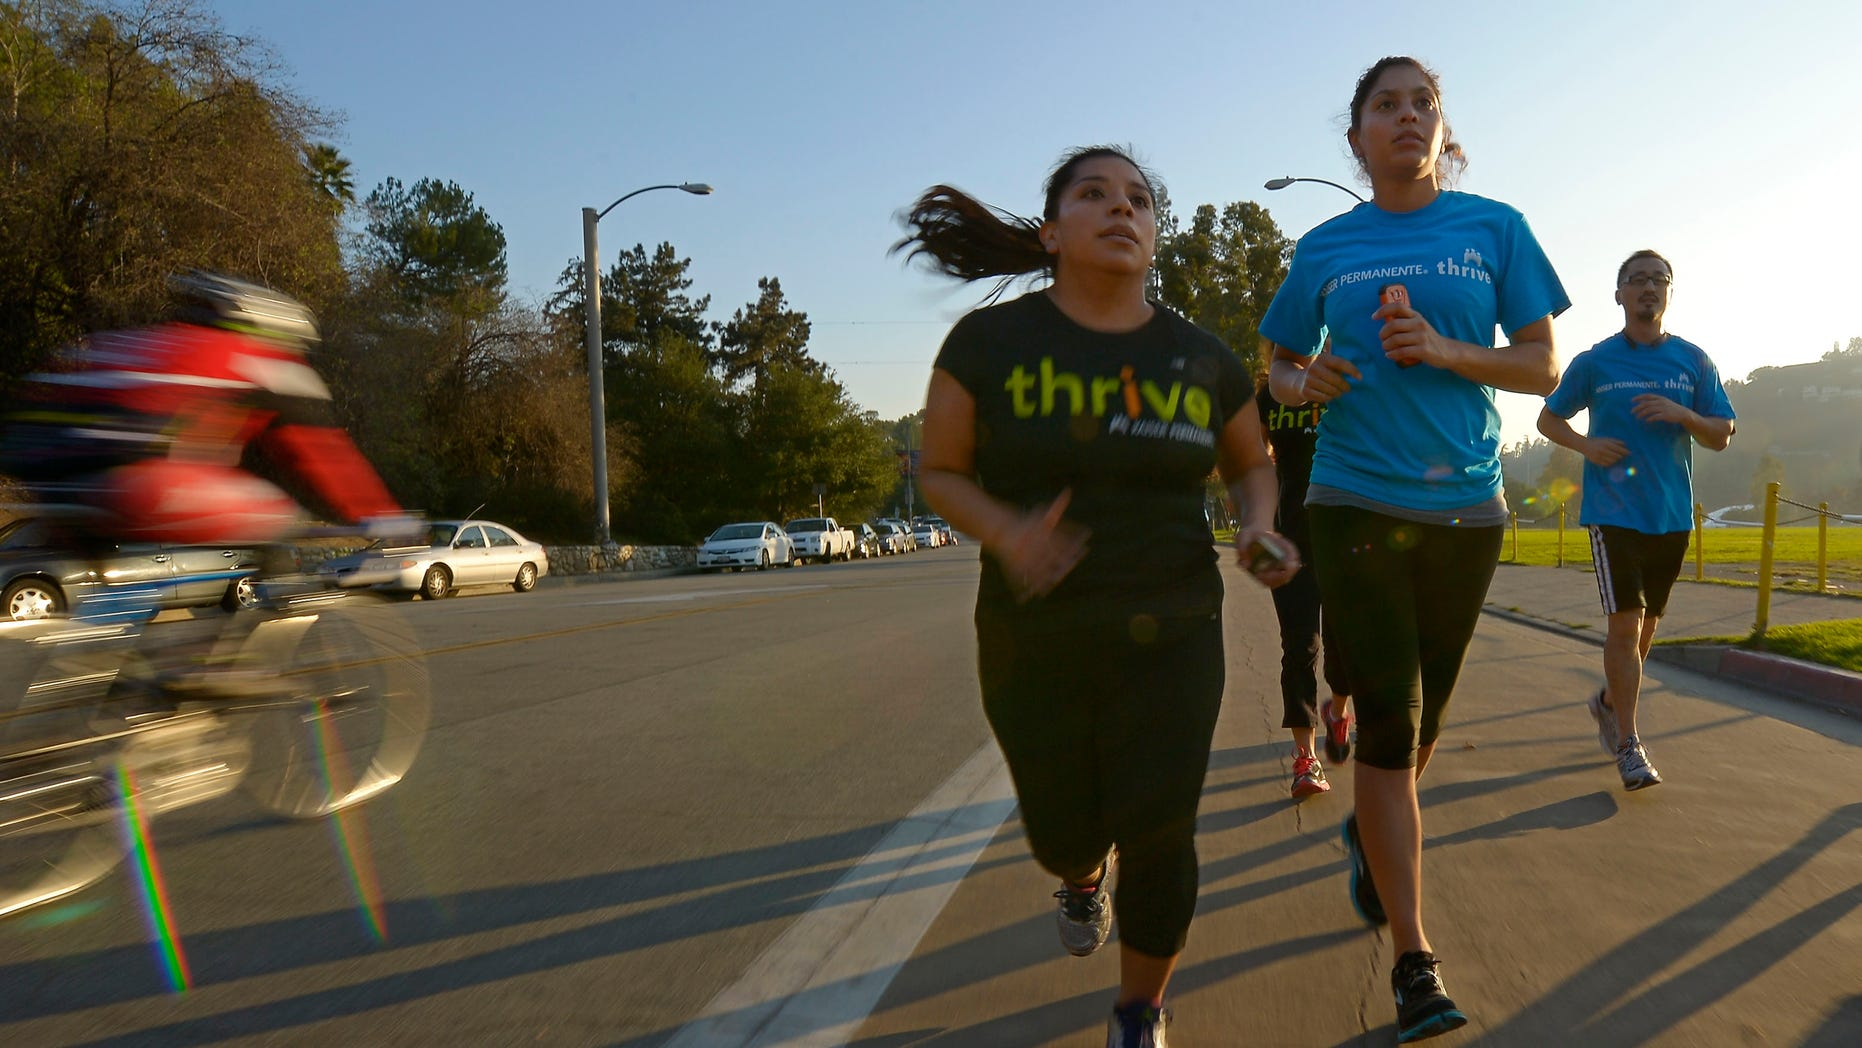 Dec. 11, 2012: In this photo, Zendi Solano, center, trains with running club members Rian Barrett, second from right, and Richard Chen in Pasadena, Calif.